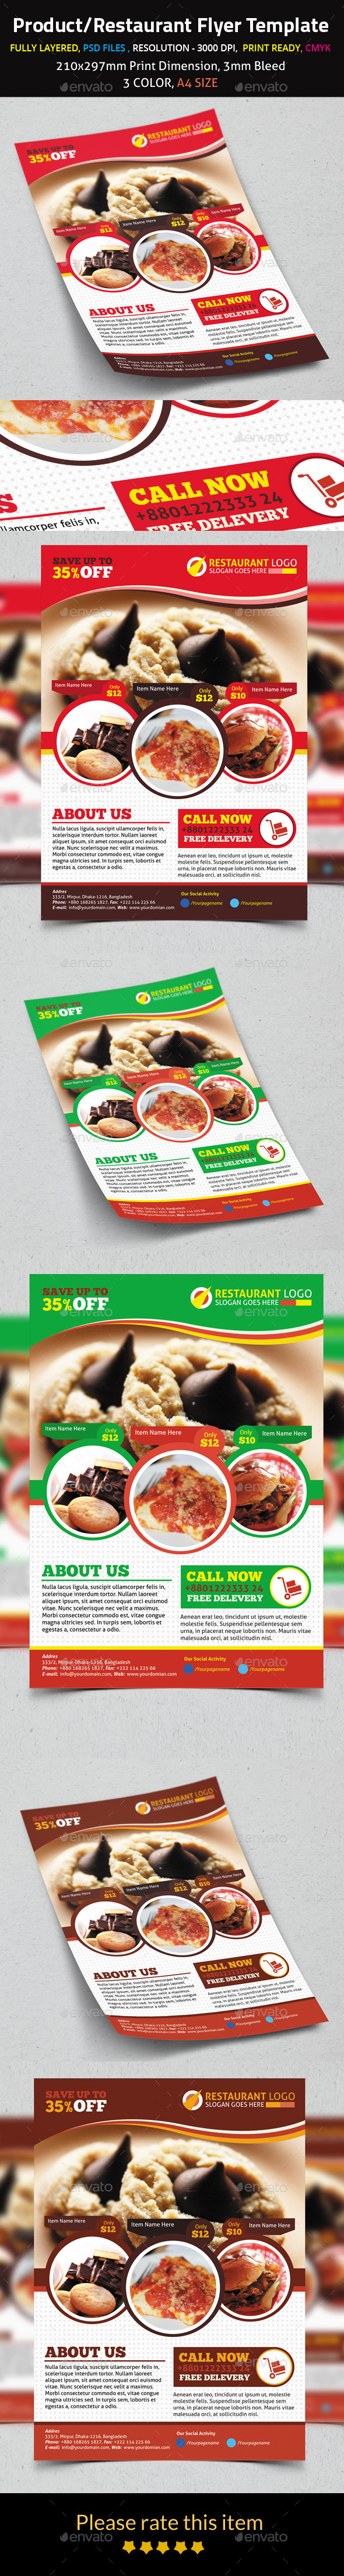 Product/Restaurant Flyer Template - Restaurant Flyers